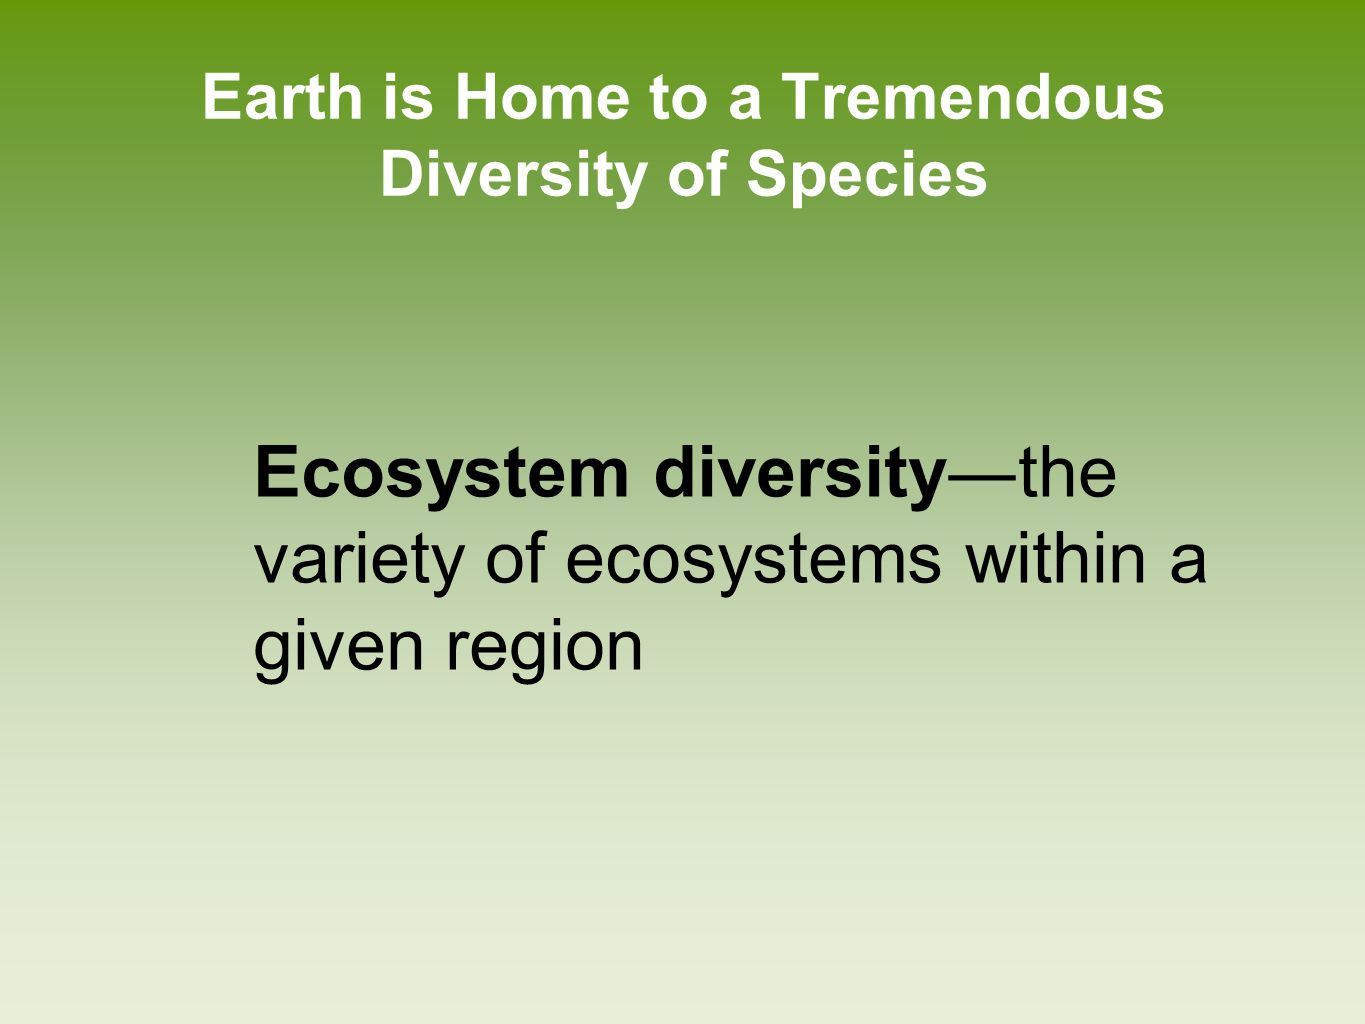 Earth is Home to a Tremendous Diversity of Species